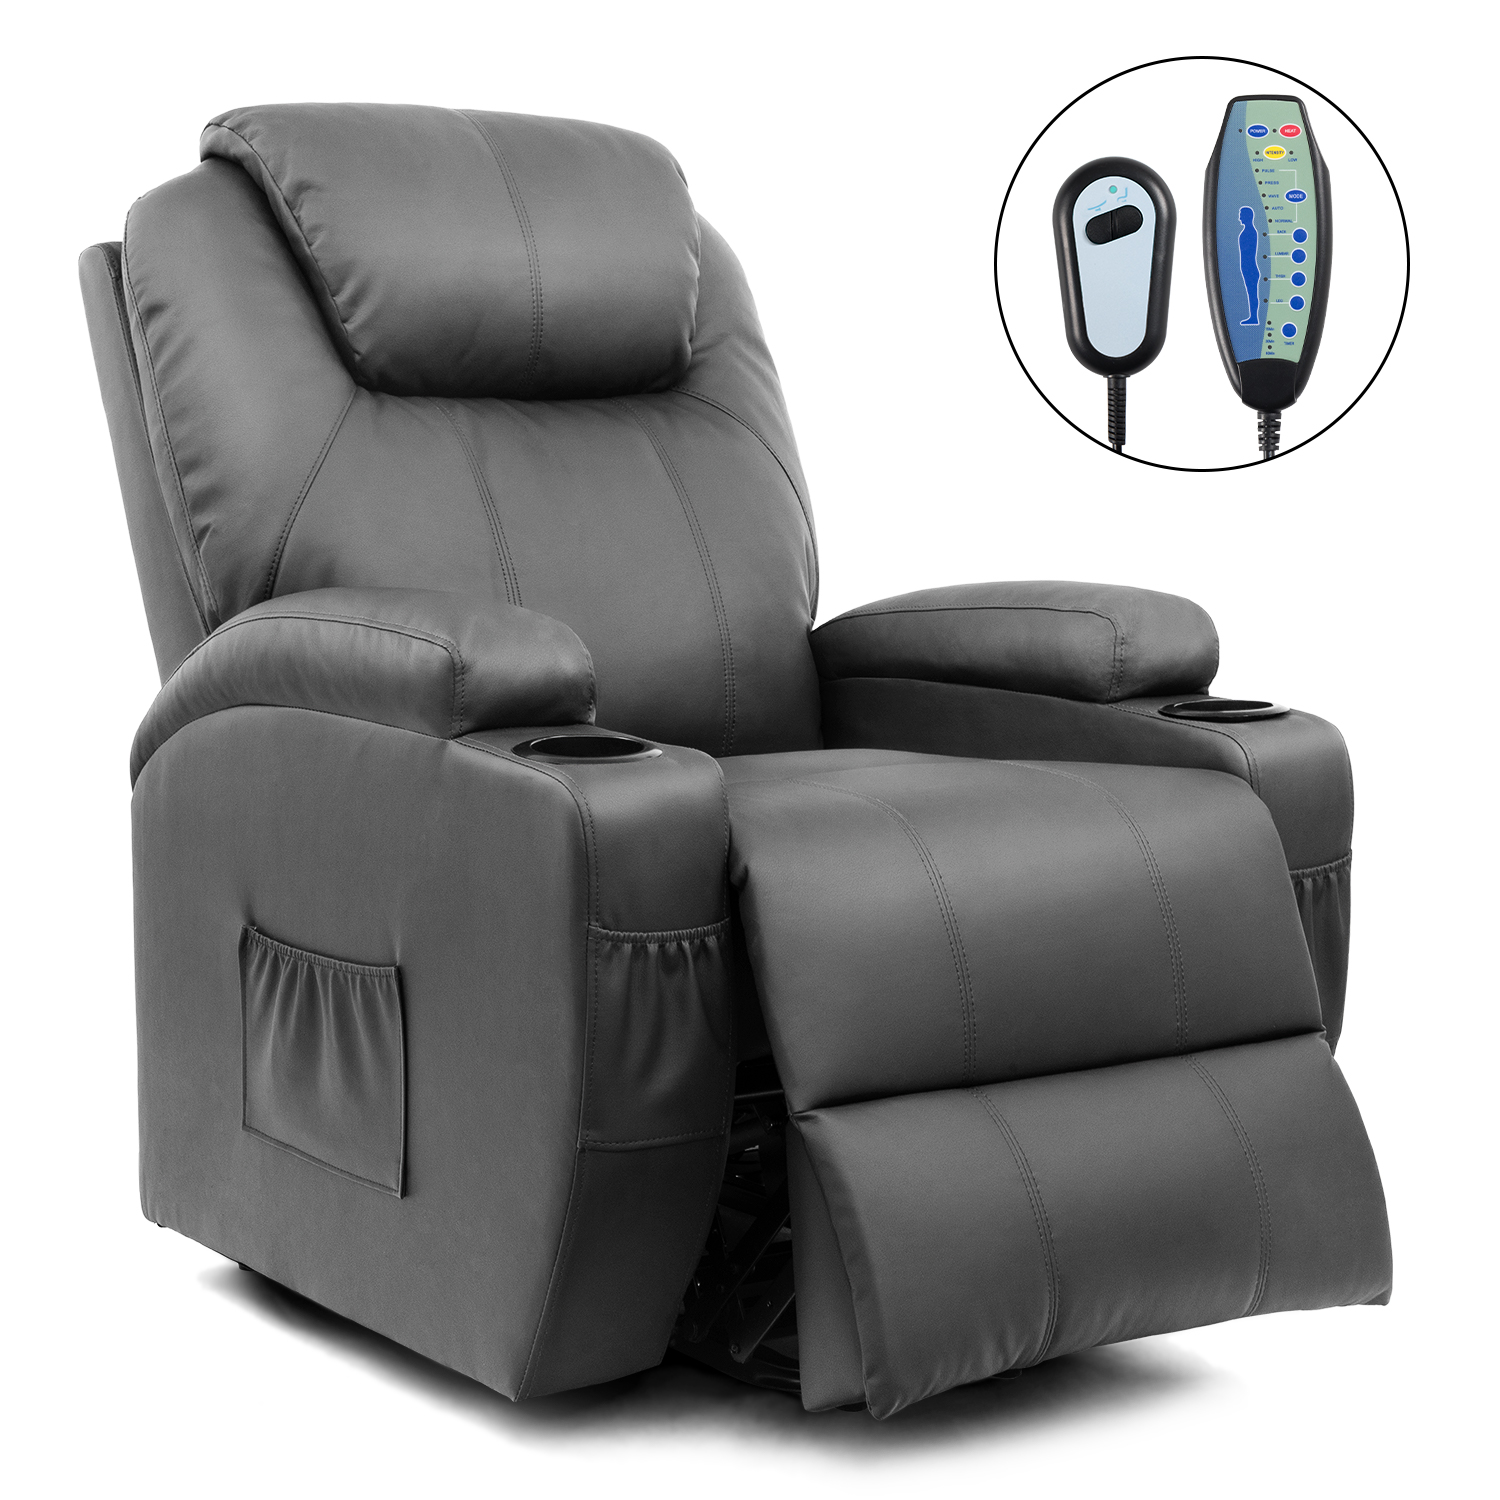 Walnew Power Lift Recliner with Massage and Heat